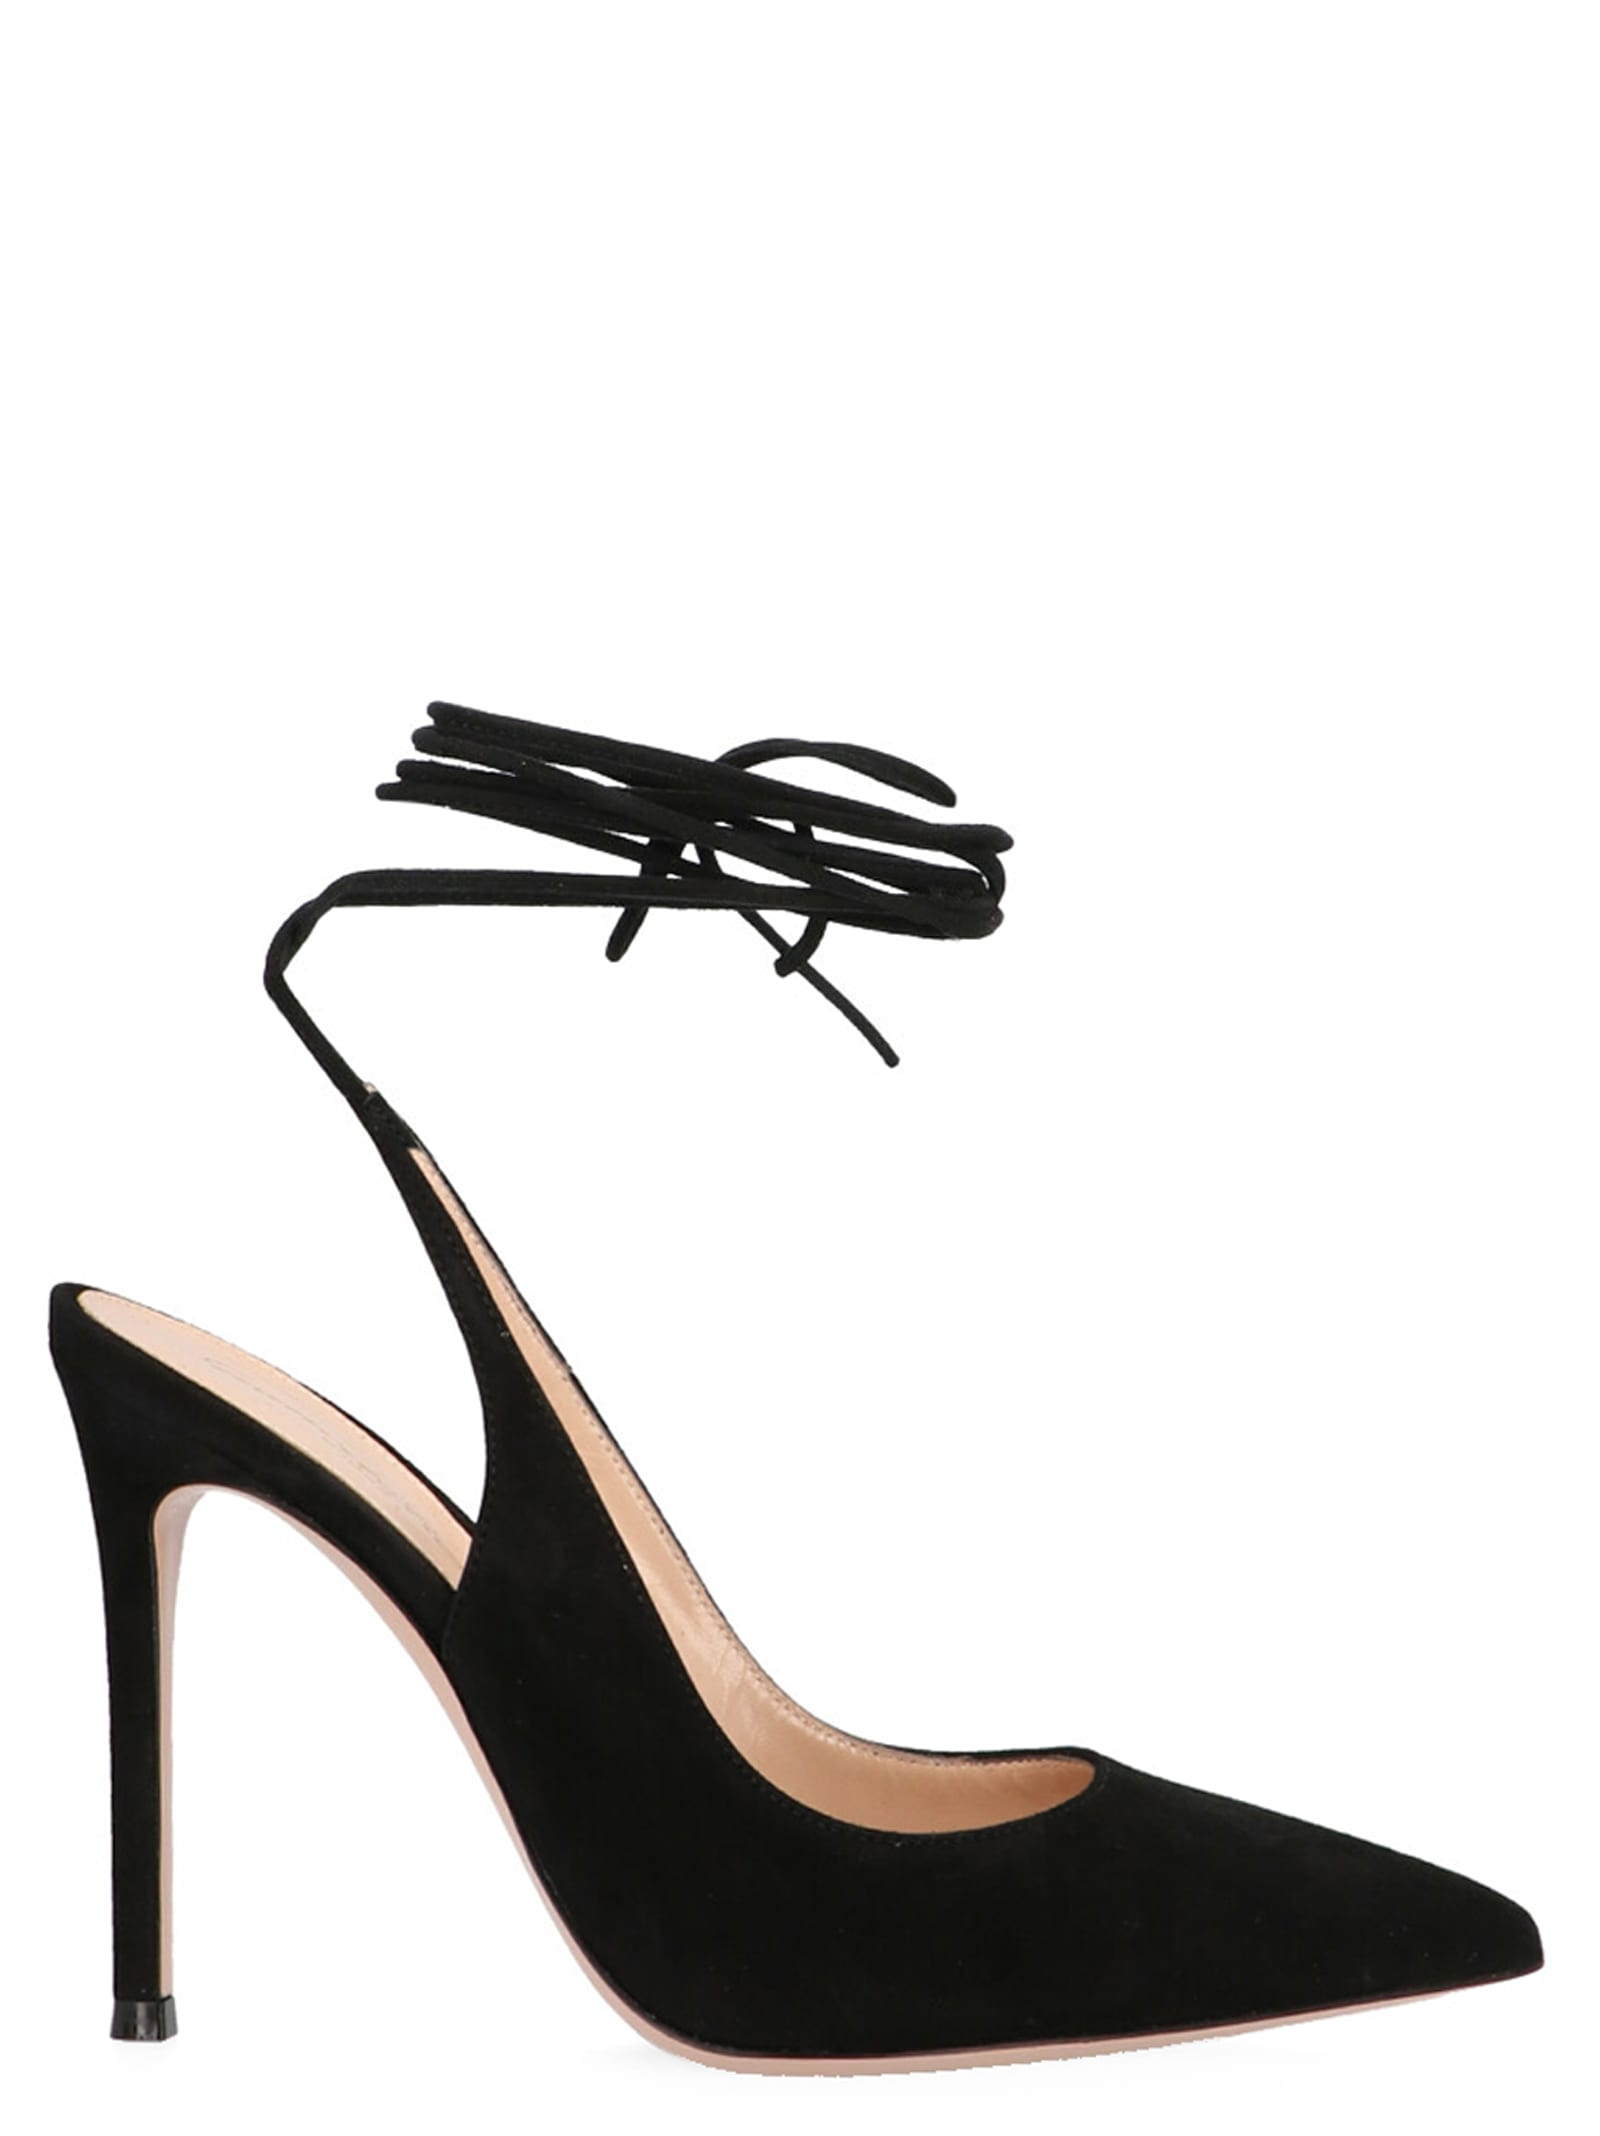 Gianvito Rossi High-heeled shoes